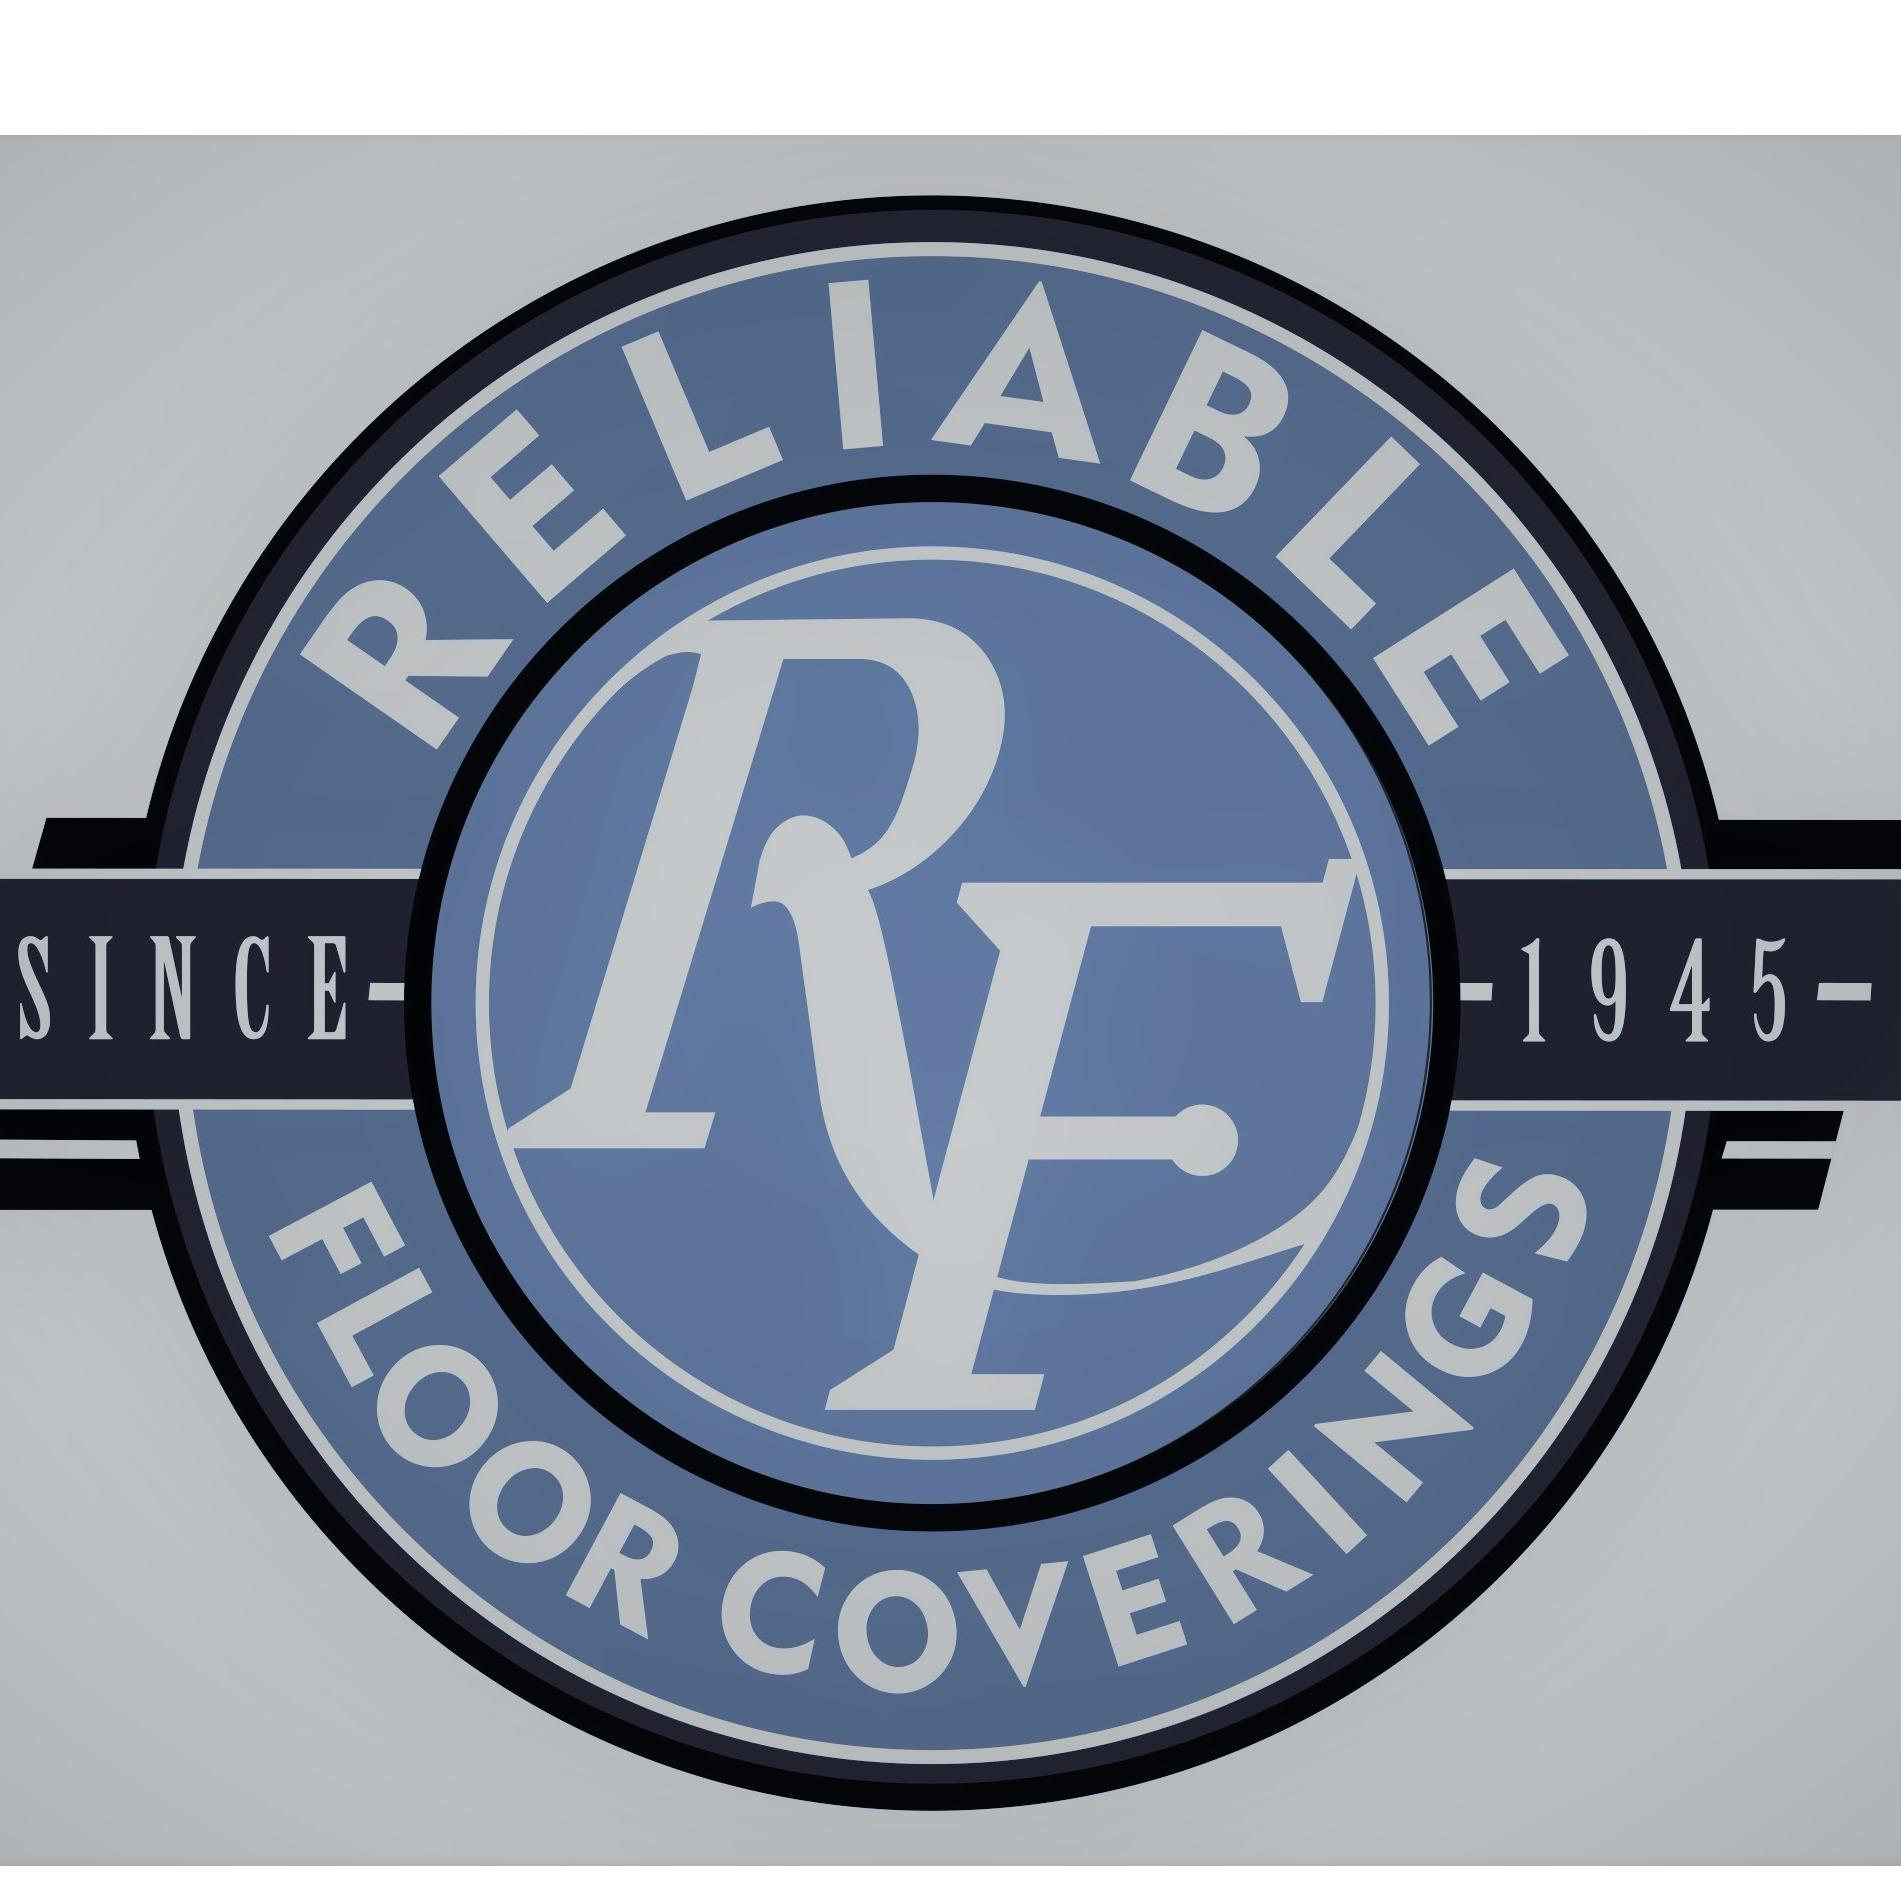 Reliable Floor Coverings image 3